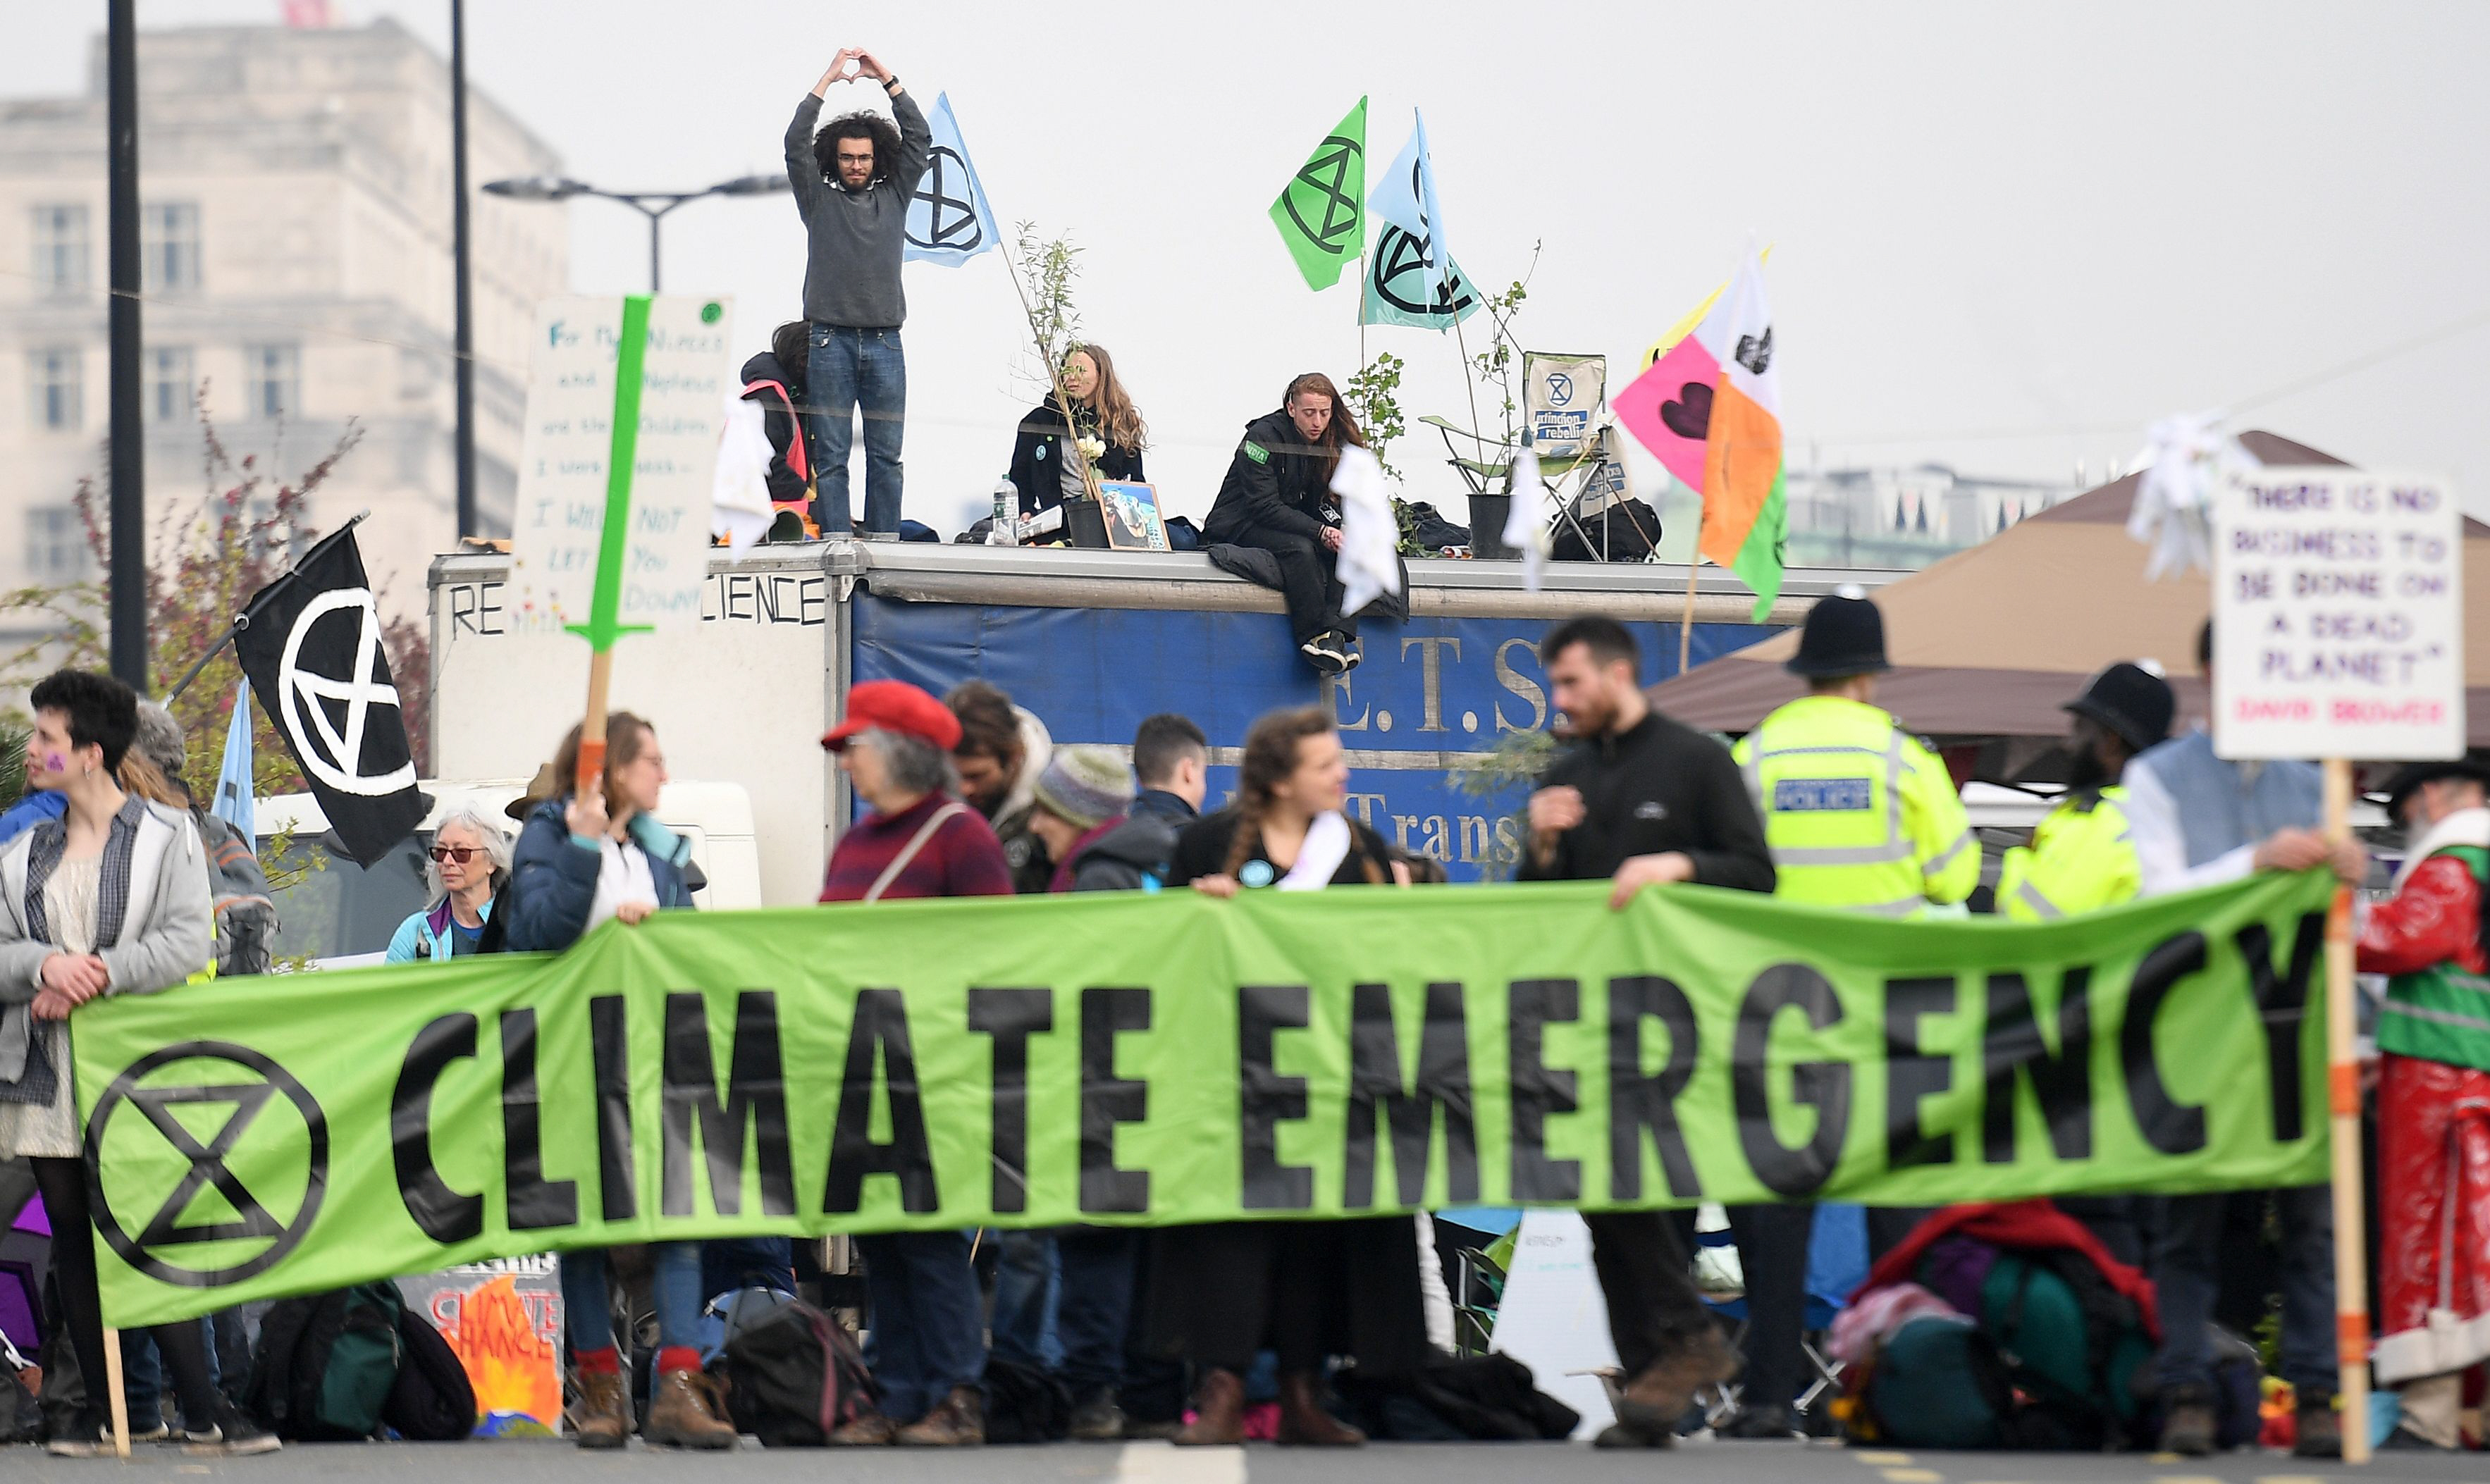 london climate protests move to stock exchange